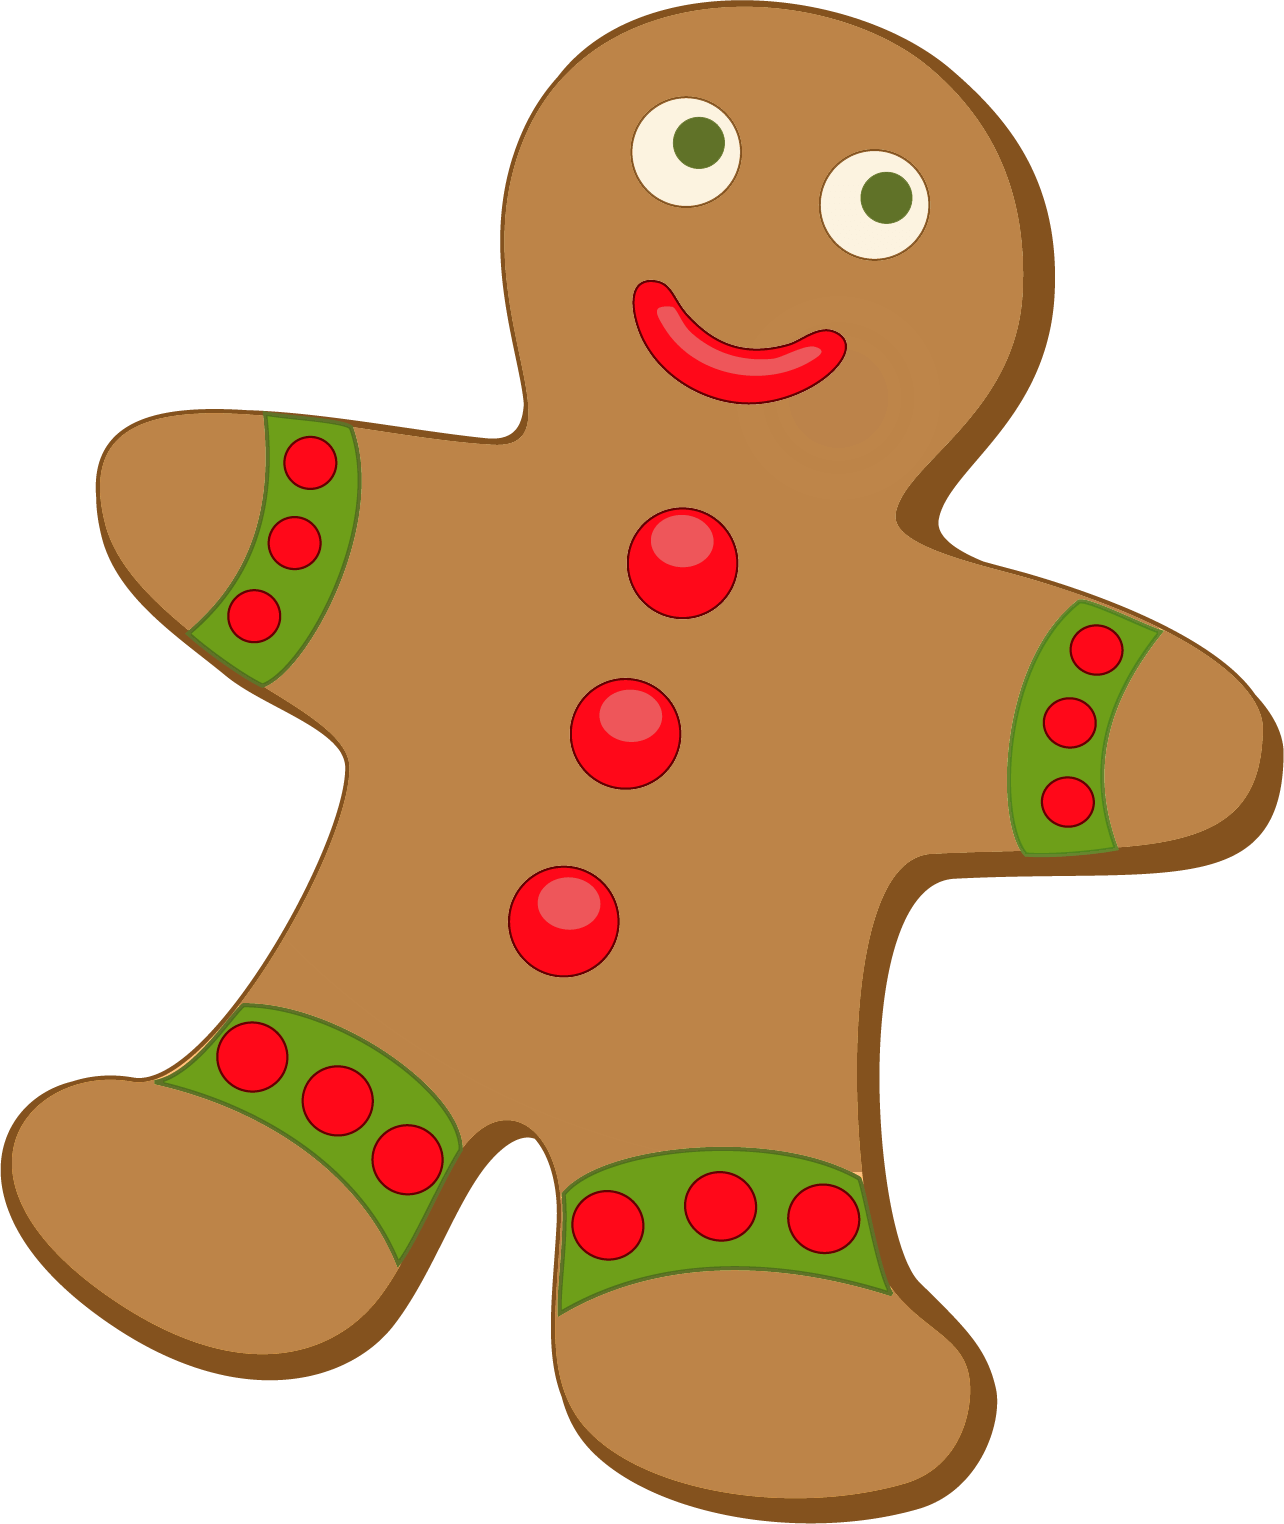 Free at getdrawings com. Cute gingerbread house clipart